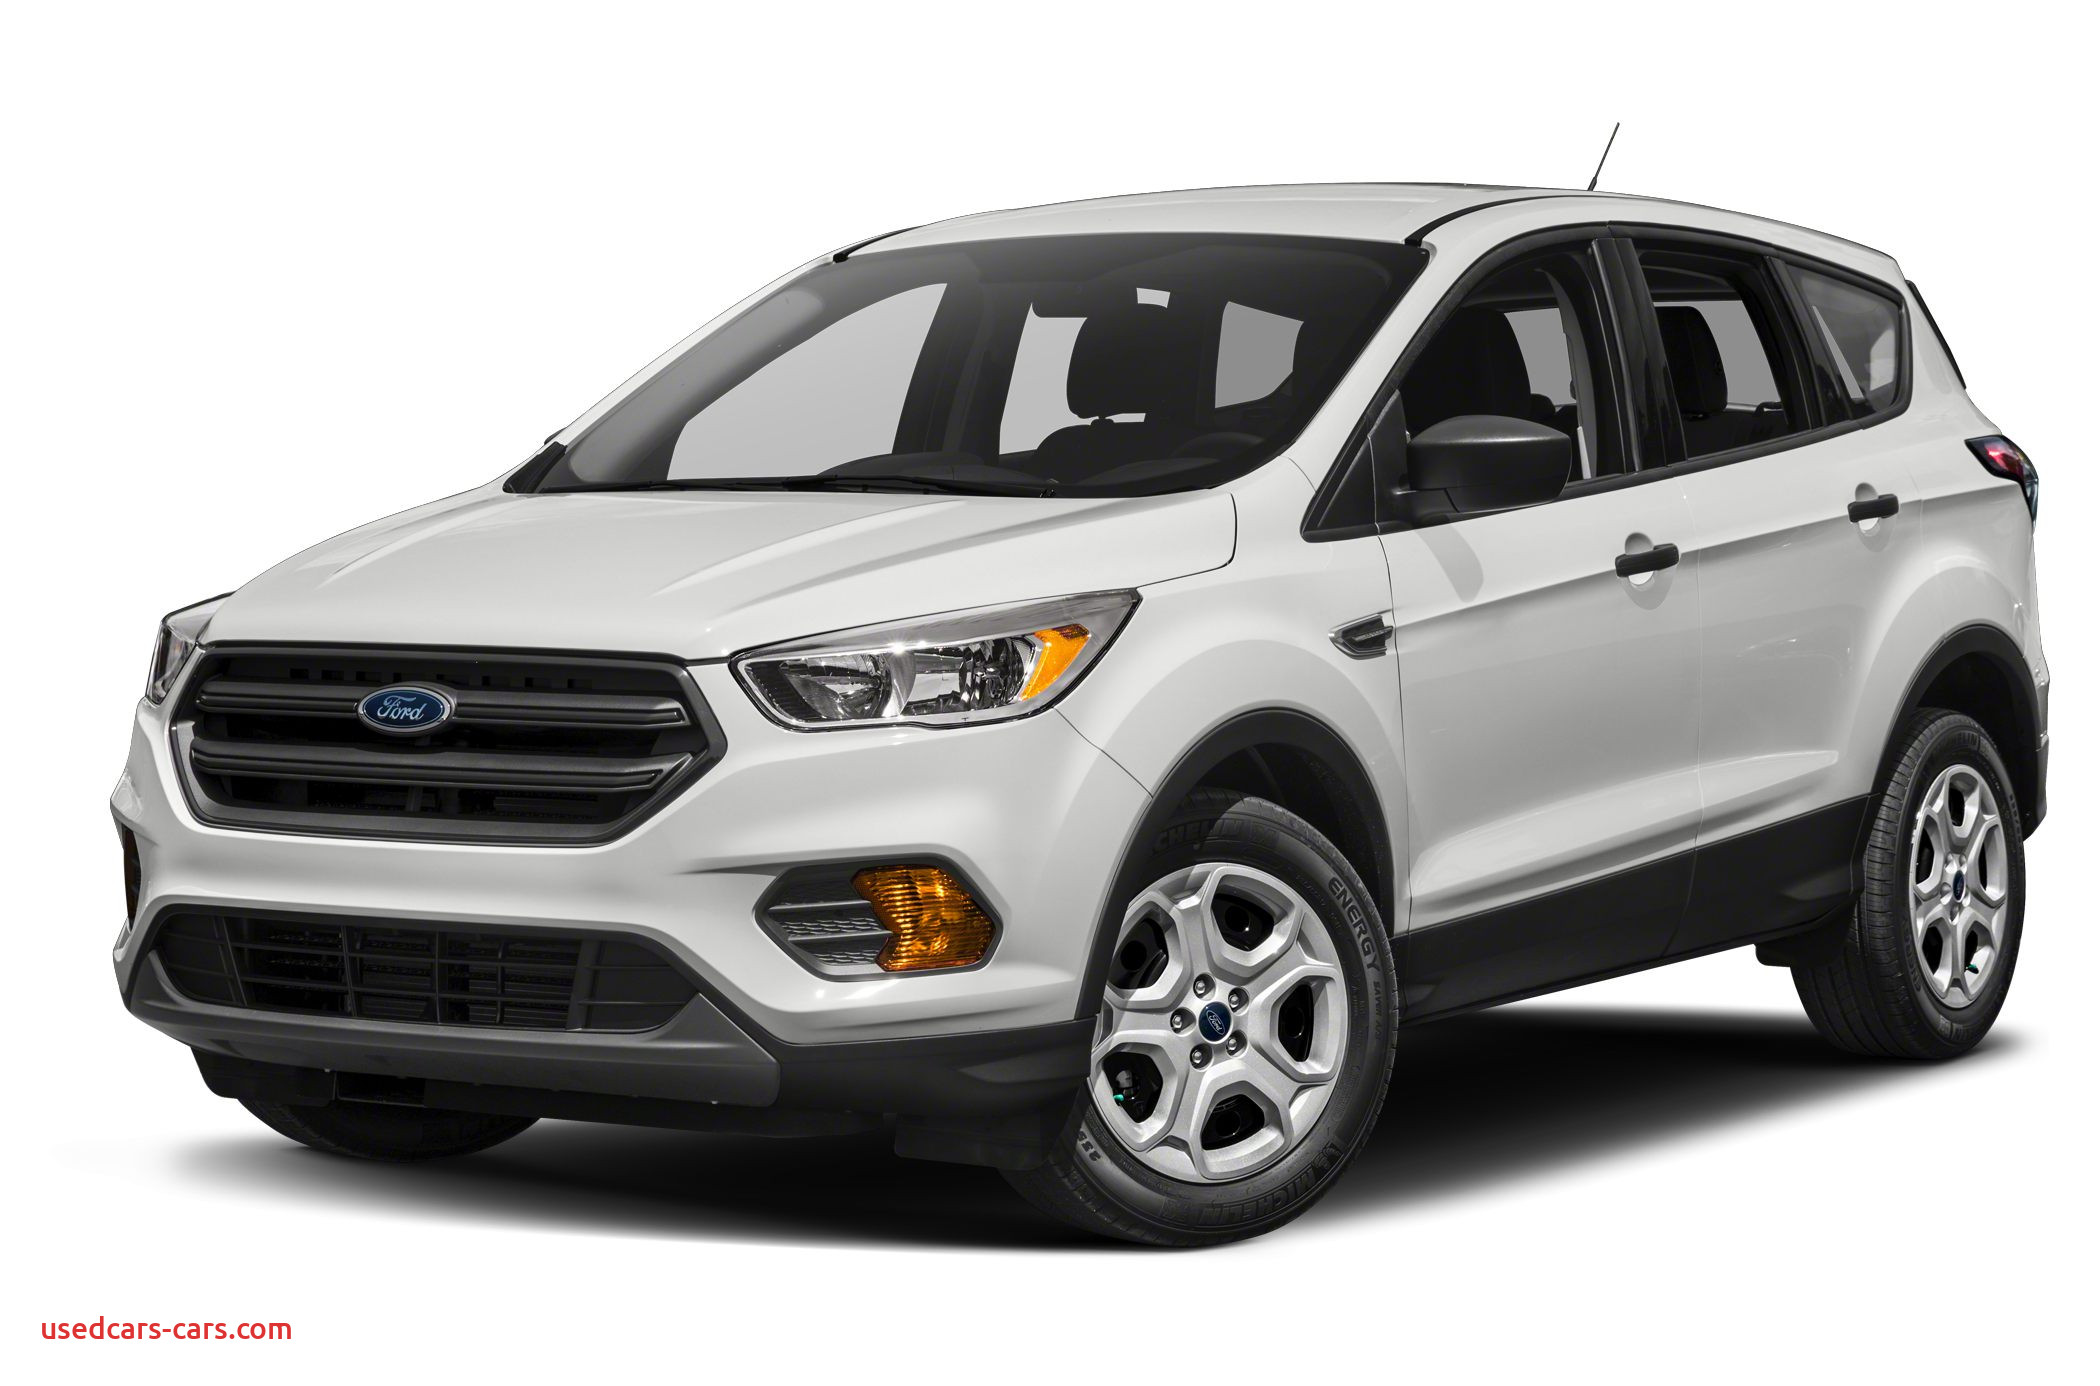 2020 ford Escape Hp and torque Best Of 2019 ford Escape Specs and Prices